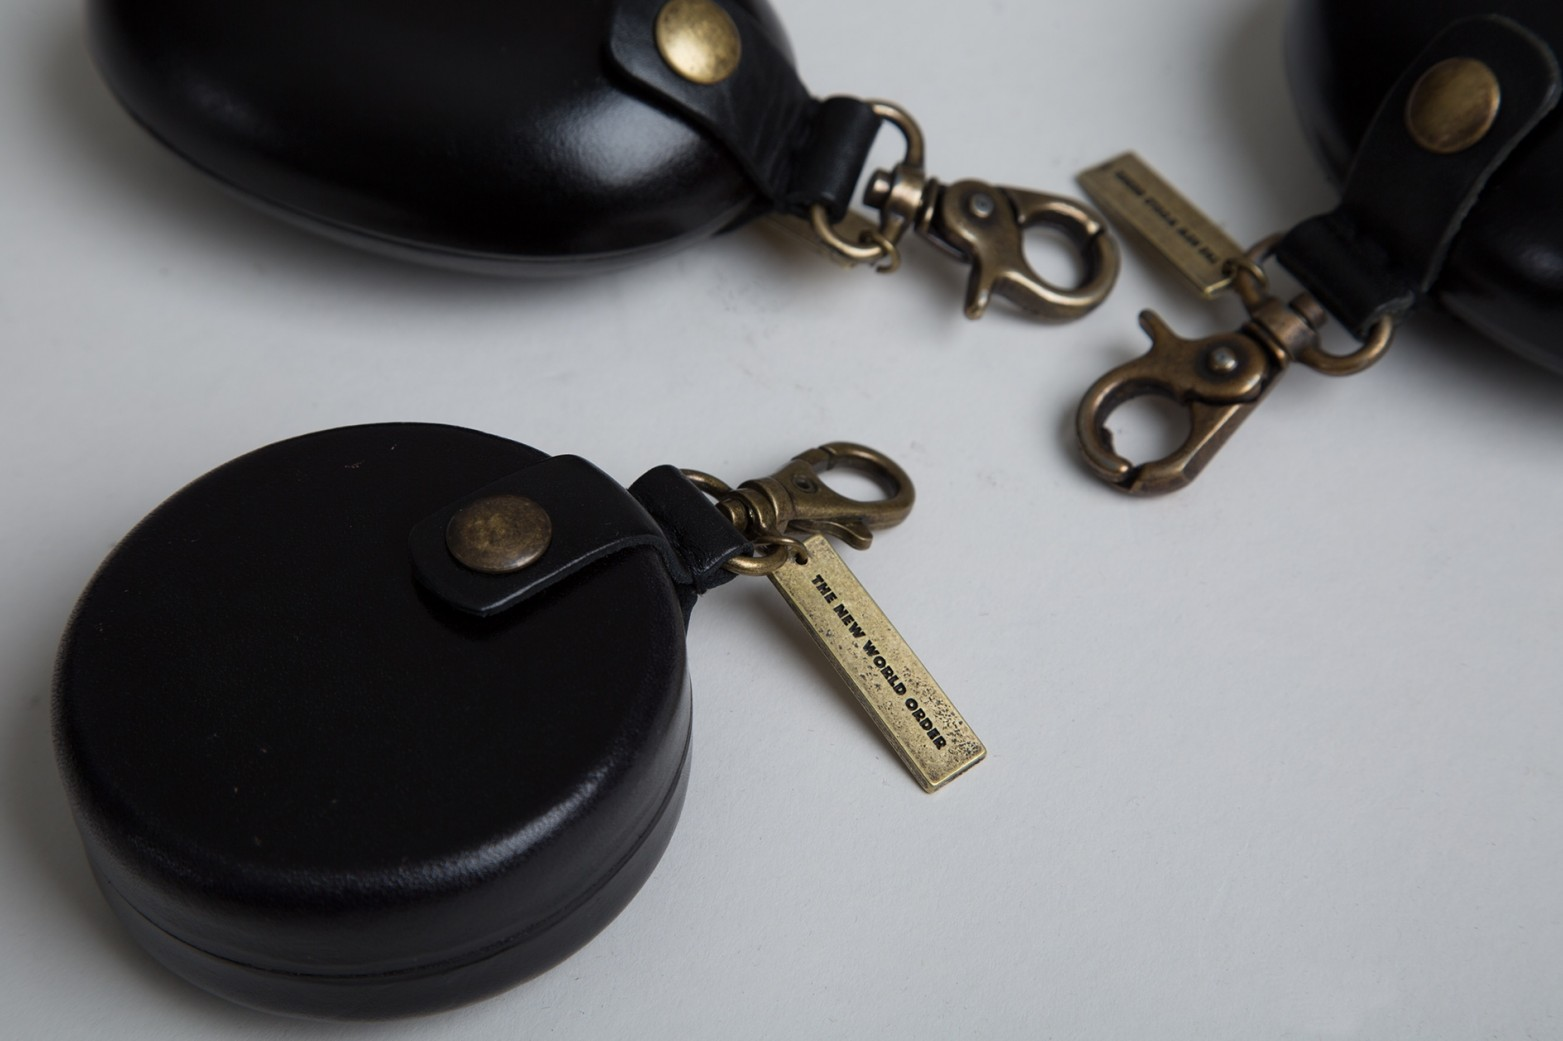 The New World Order Grenade Coin Purse